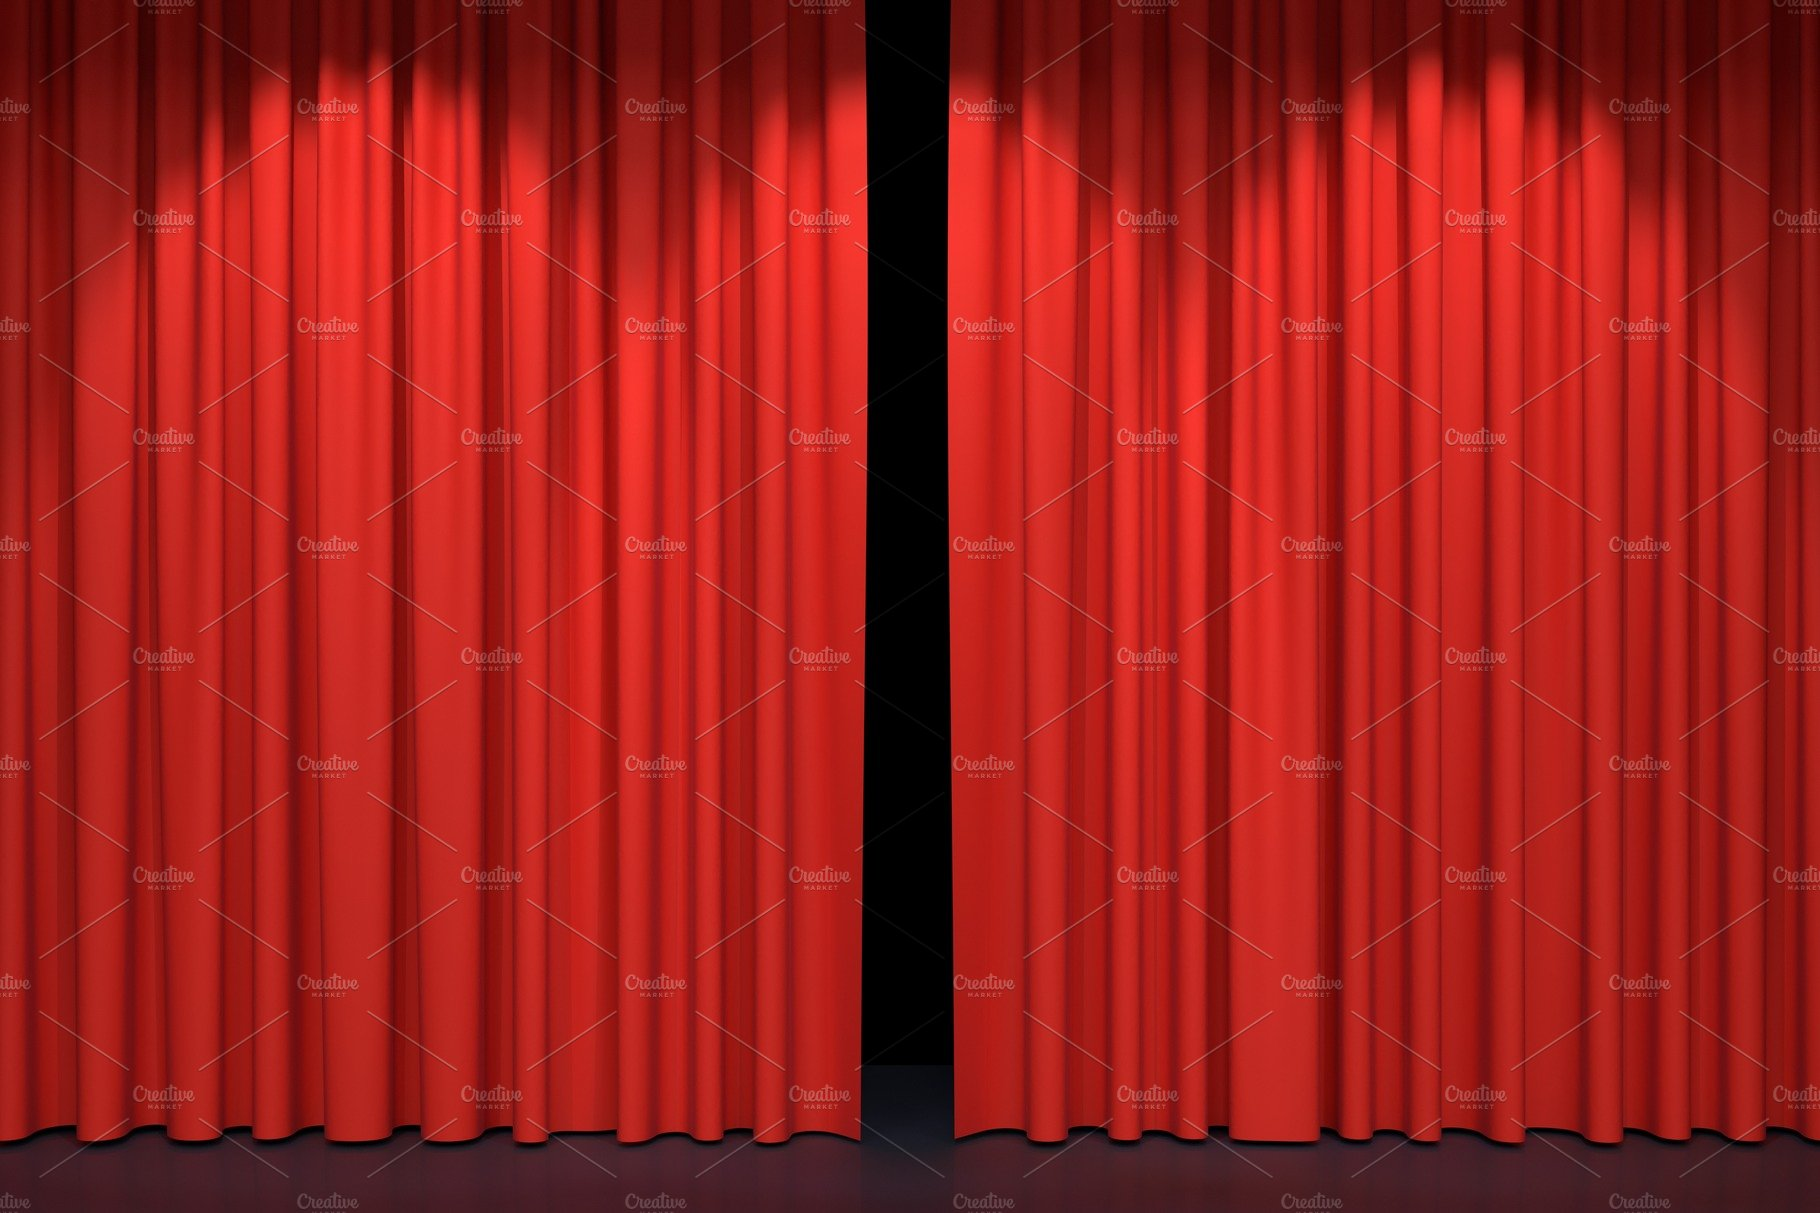 Red Stage Curtains 3d Illustration Illustrations Creative Market